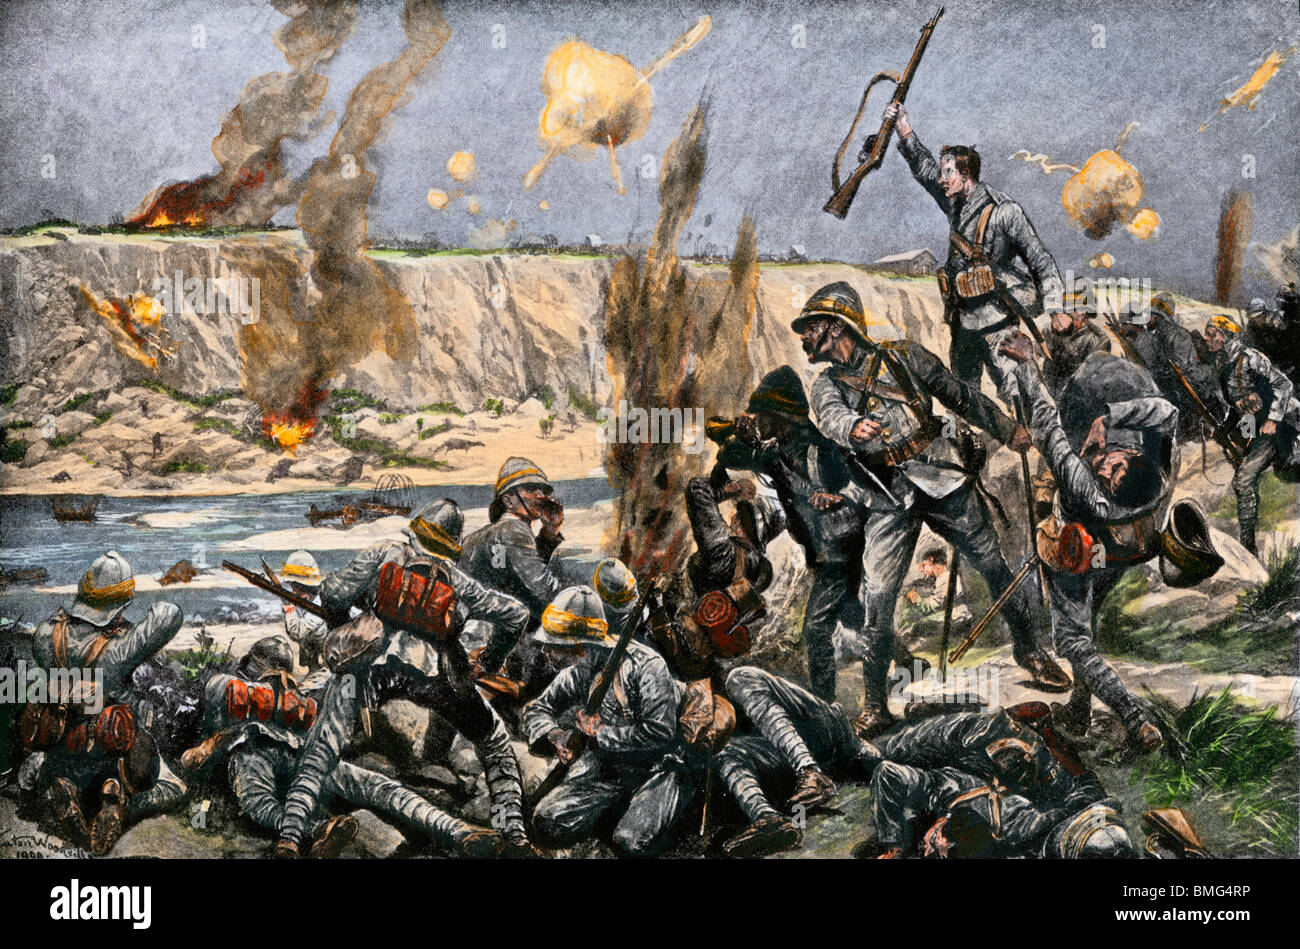 English bombardment of Paardeberg in the Second Boer War, 1900. Hand-colored halftone of an illustration - Stock Image